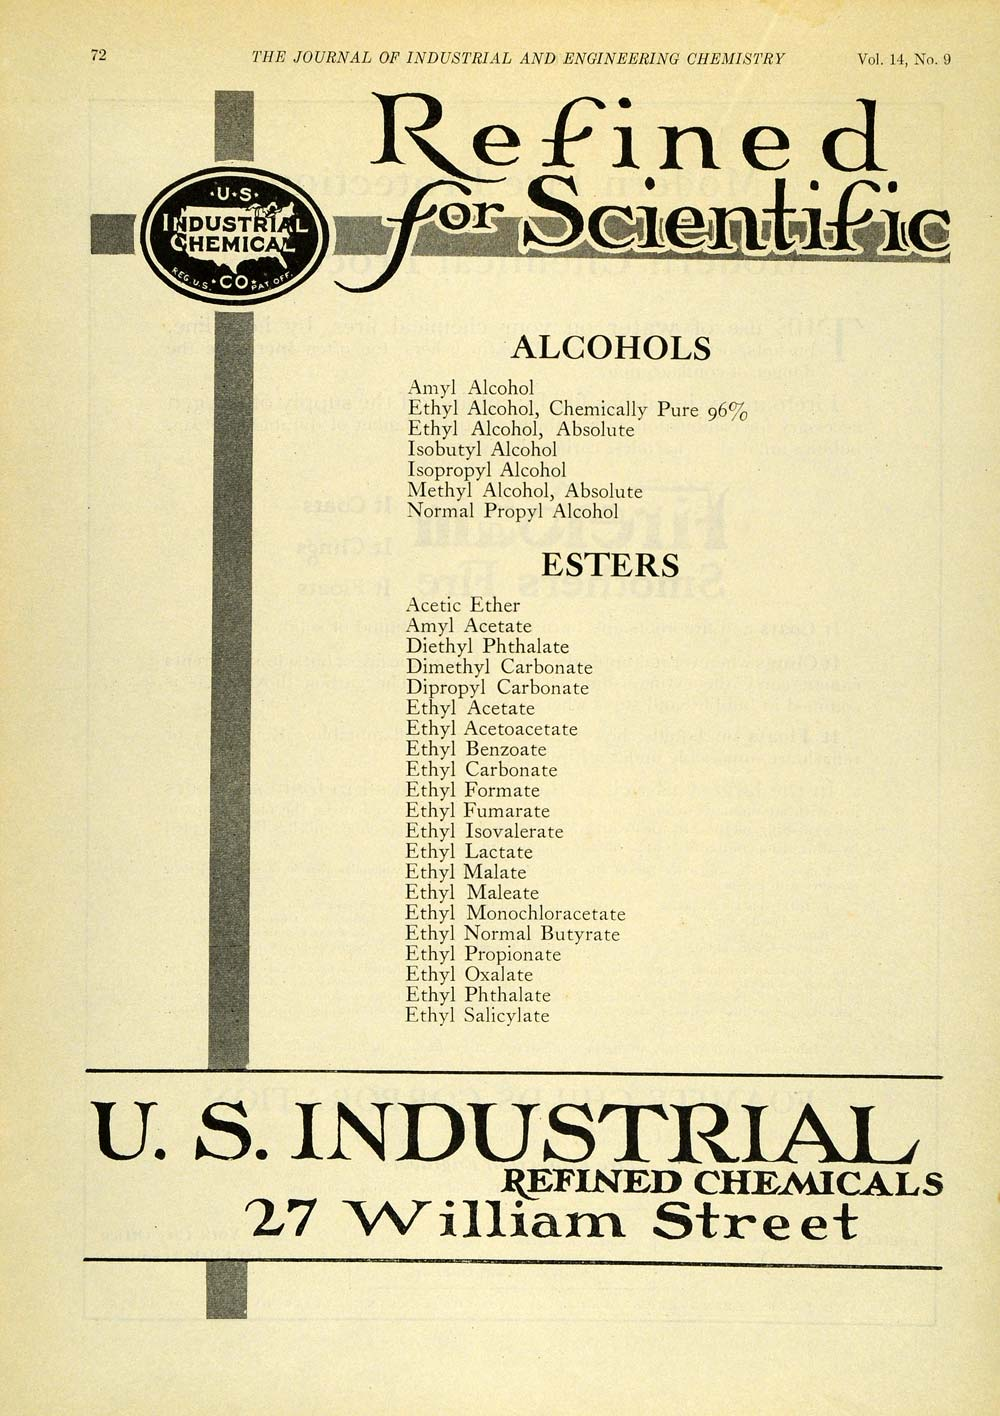 Absolute ethyl alcohol bottle vintage chemical bottle science lab - 1922 Ad Refined Chemicals U S Industrial Chemistry Scientific Materials Iec1